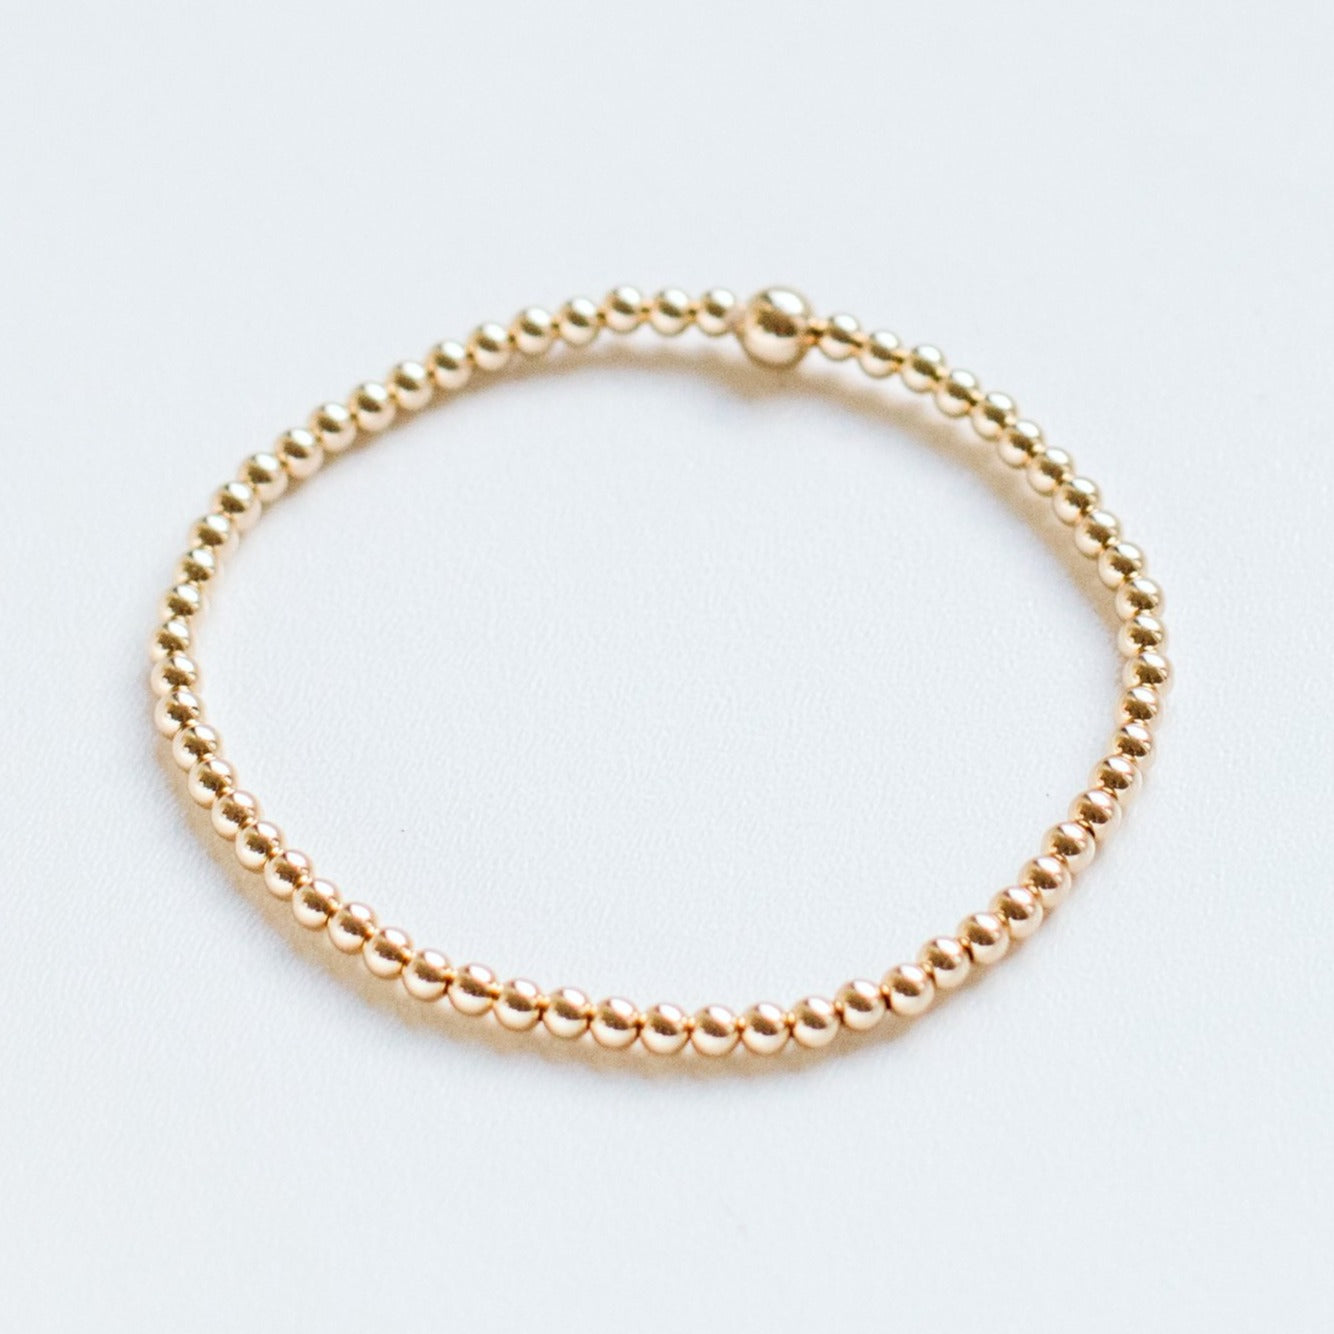 Handmade 3mm gold-filled bead stacking bracelet